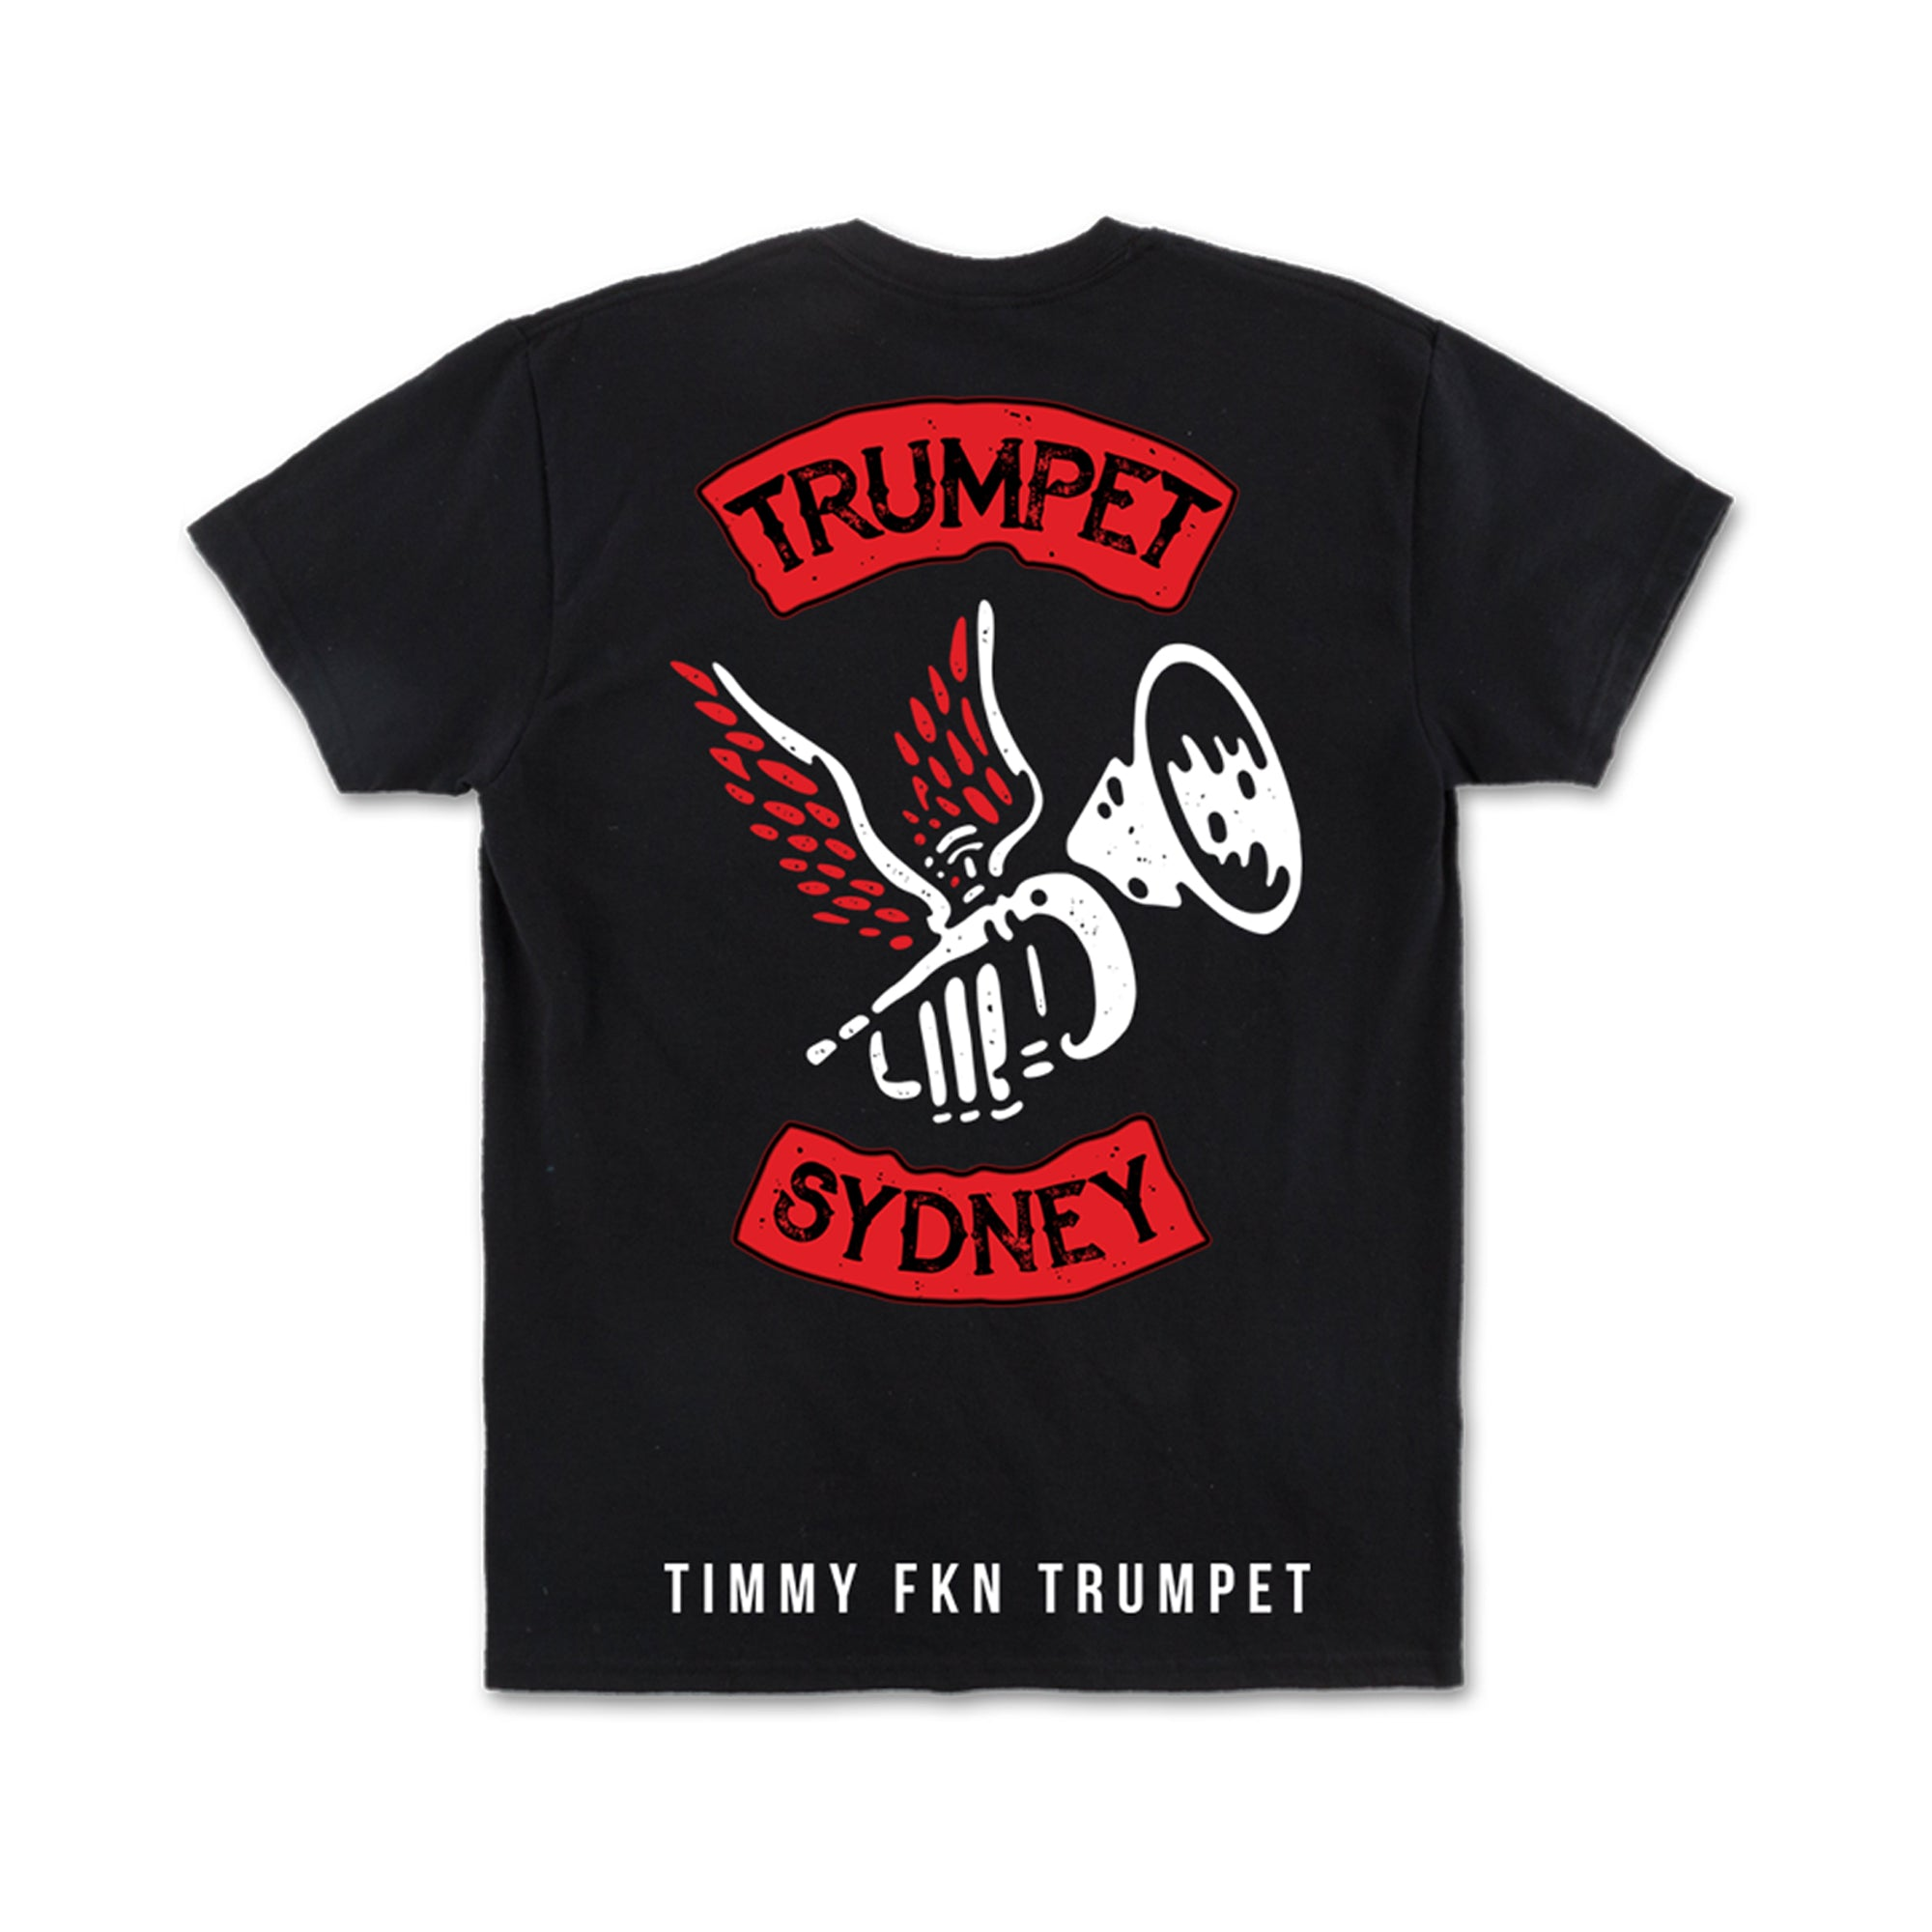 Sydney Wings Tee - Black